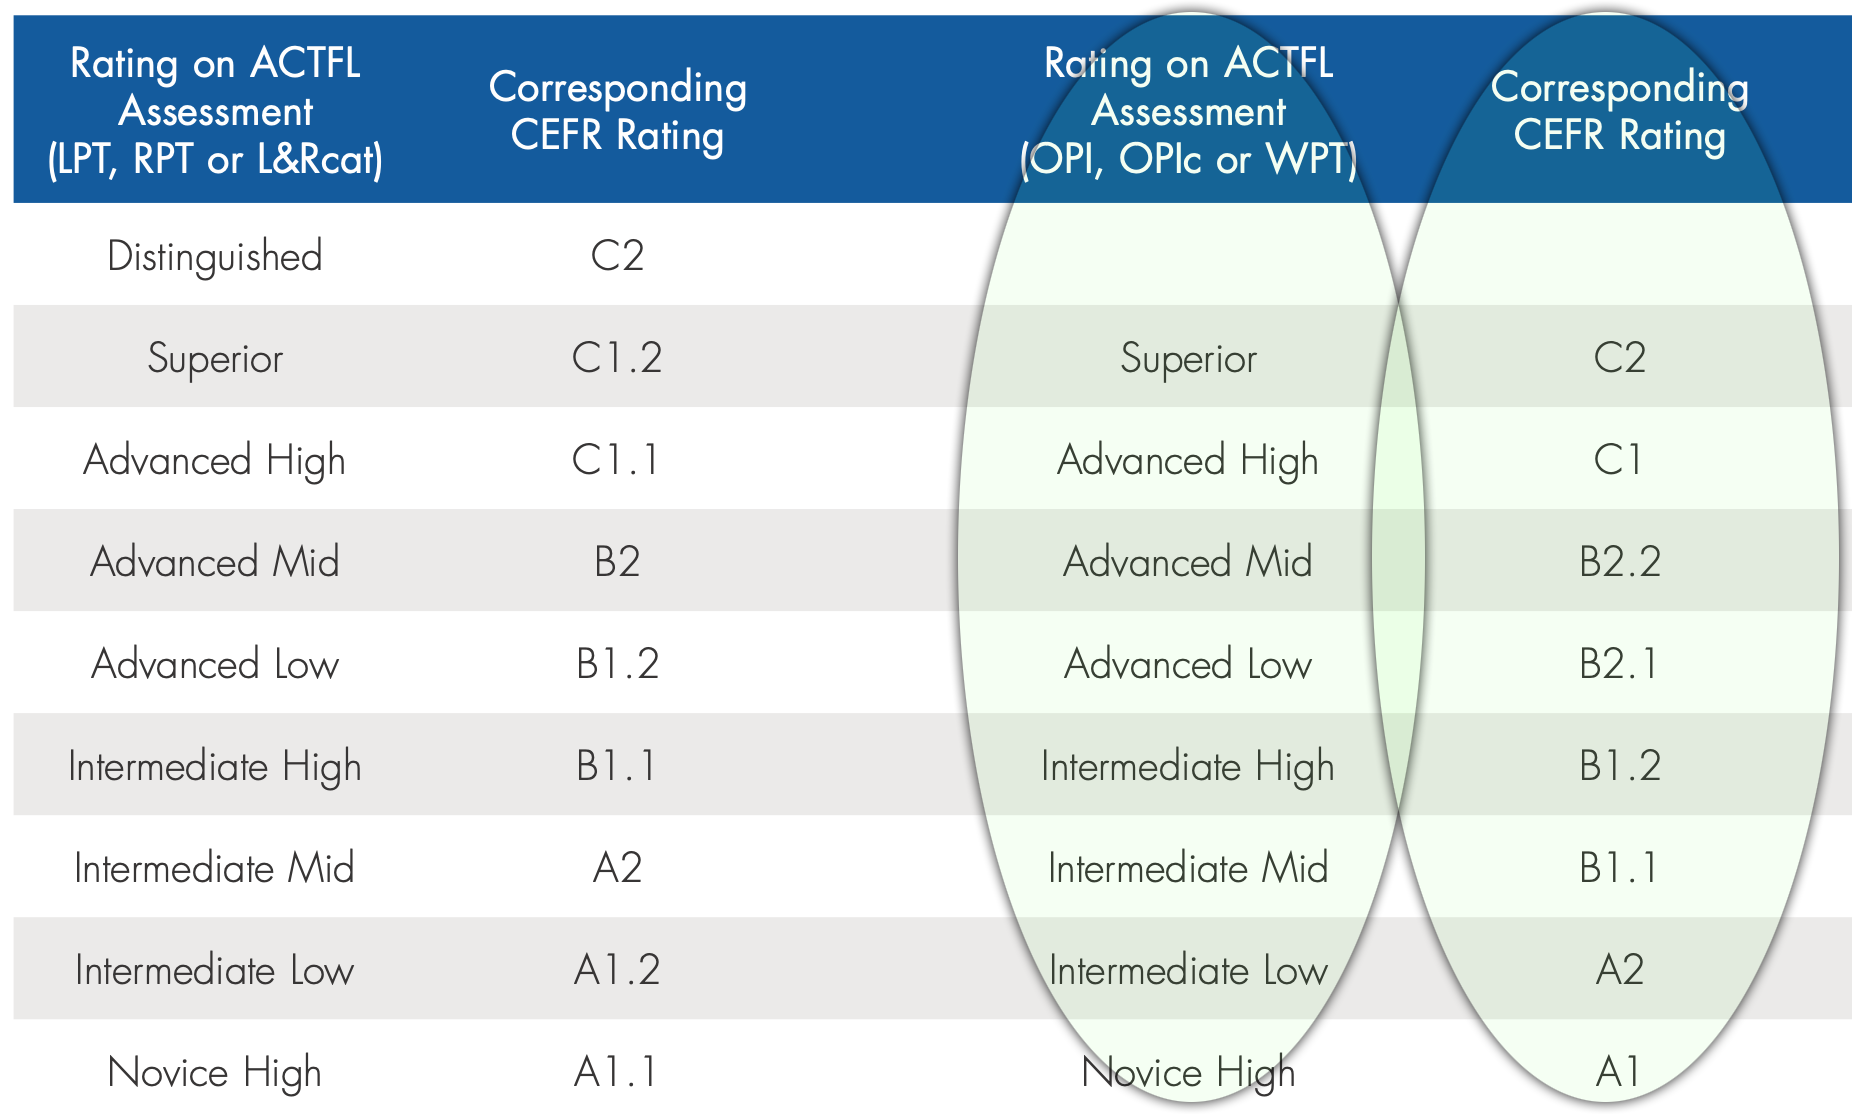 ACTFL Assessments How To Translate CEFR Rating